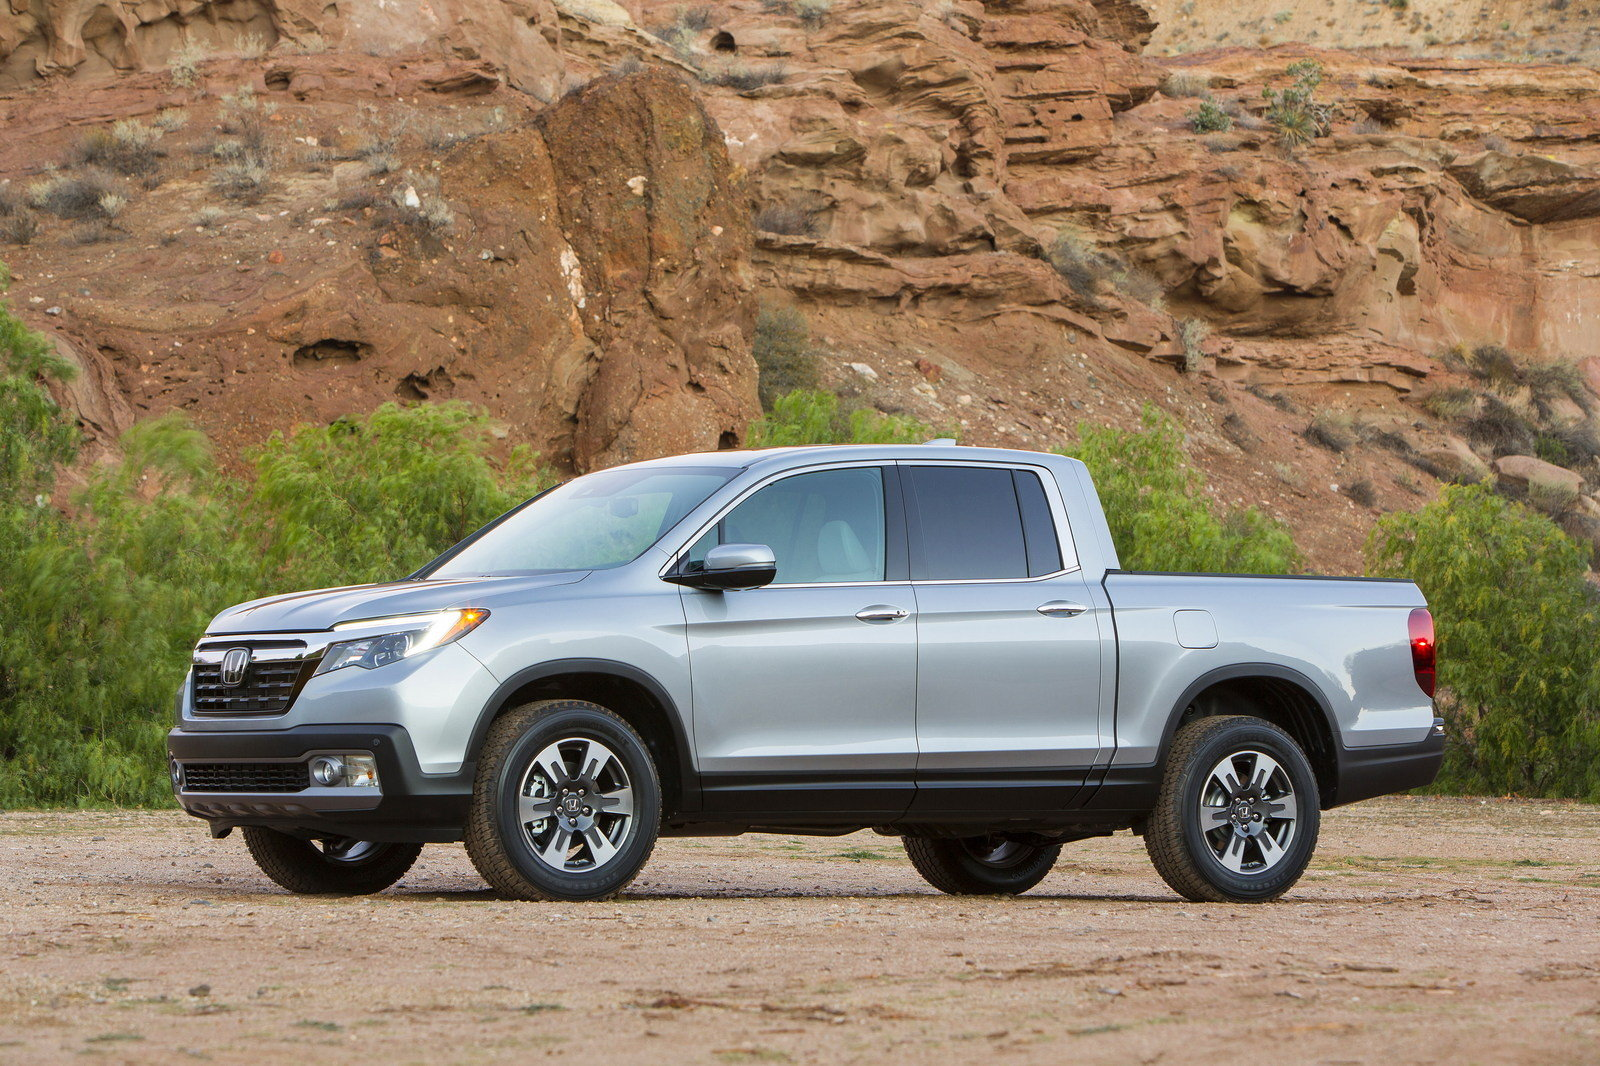 2016 honda ridgeline picture 661611 truck review top speed. Black Bedroom Furniture Sets. Home Design Ideas